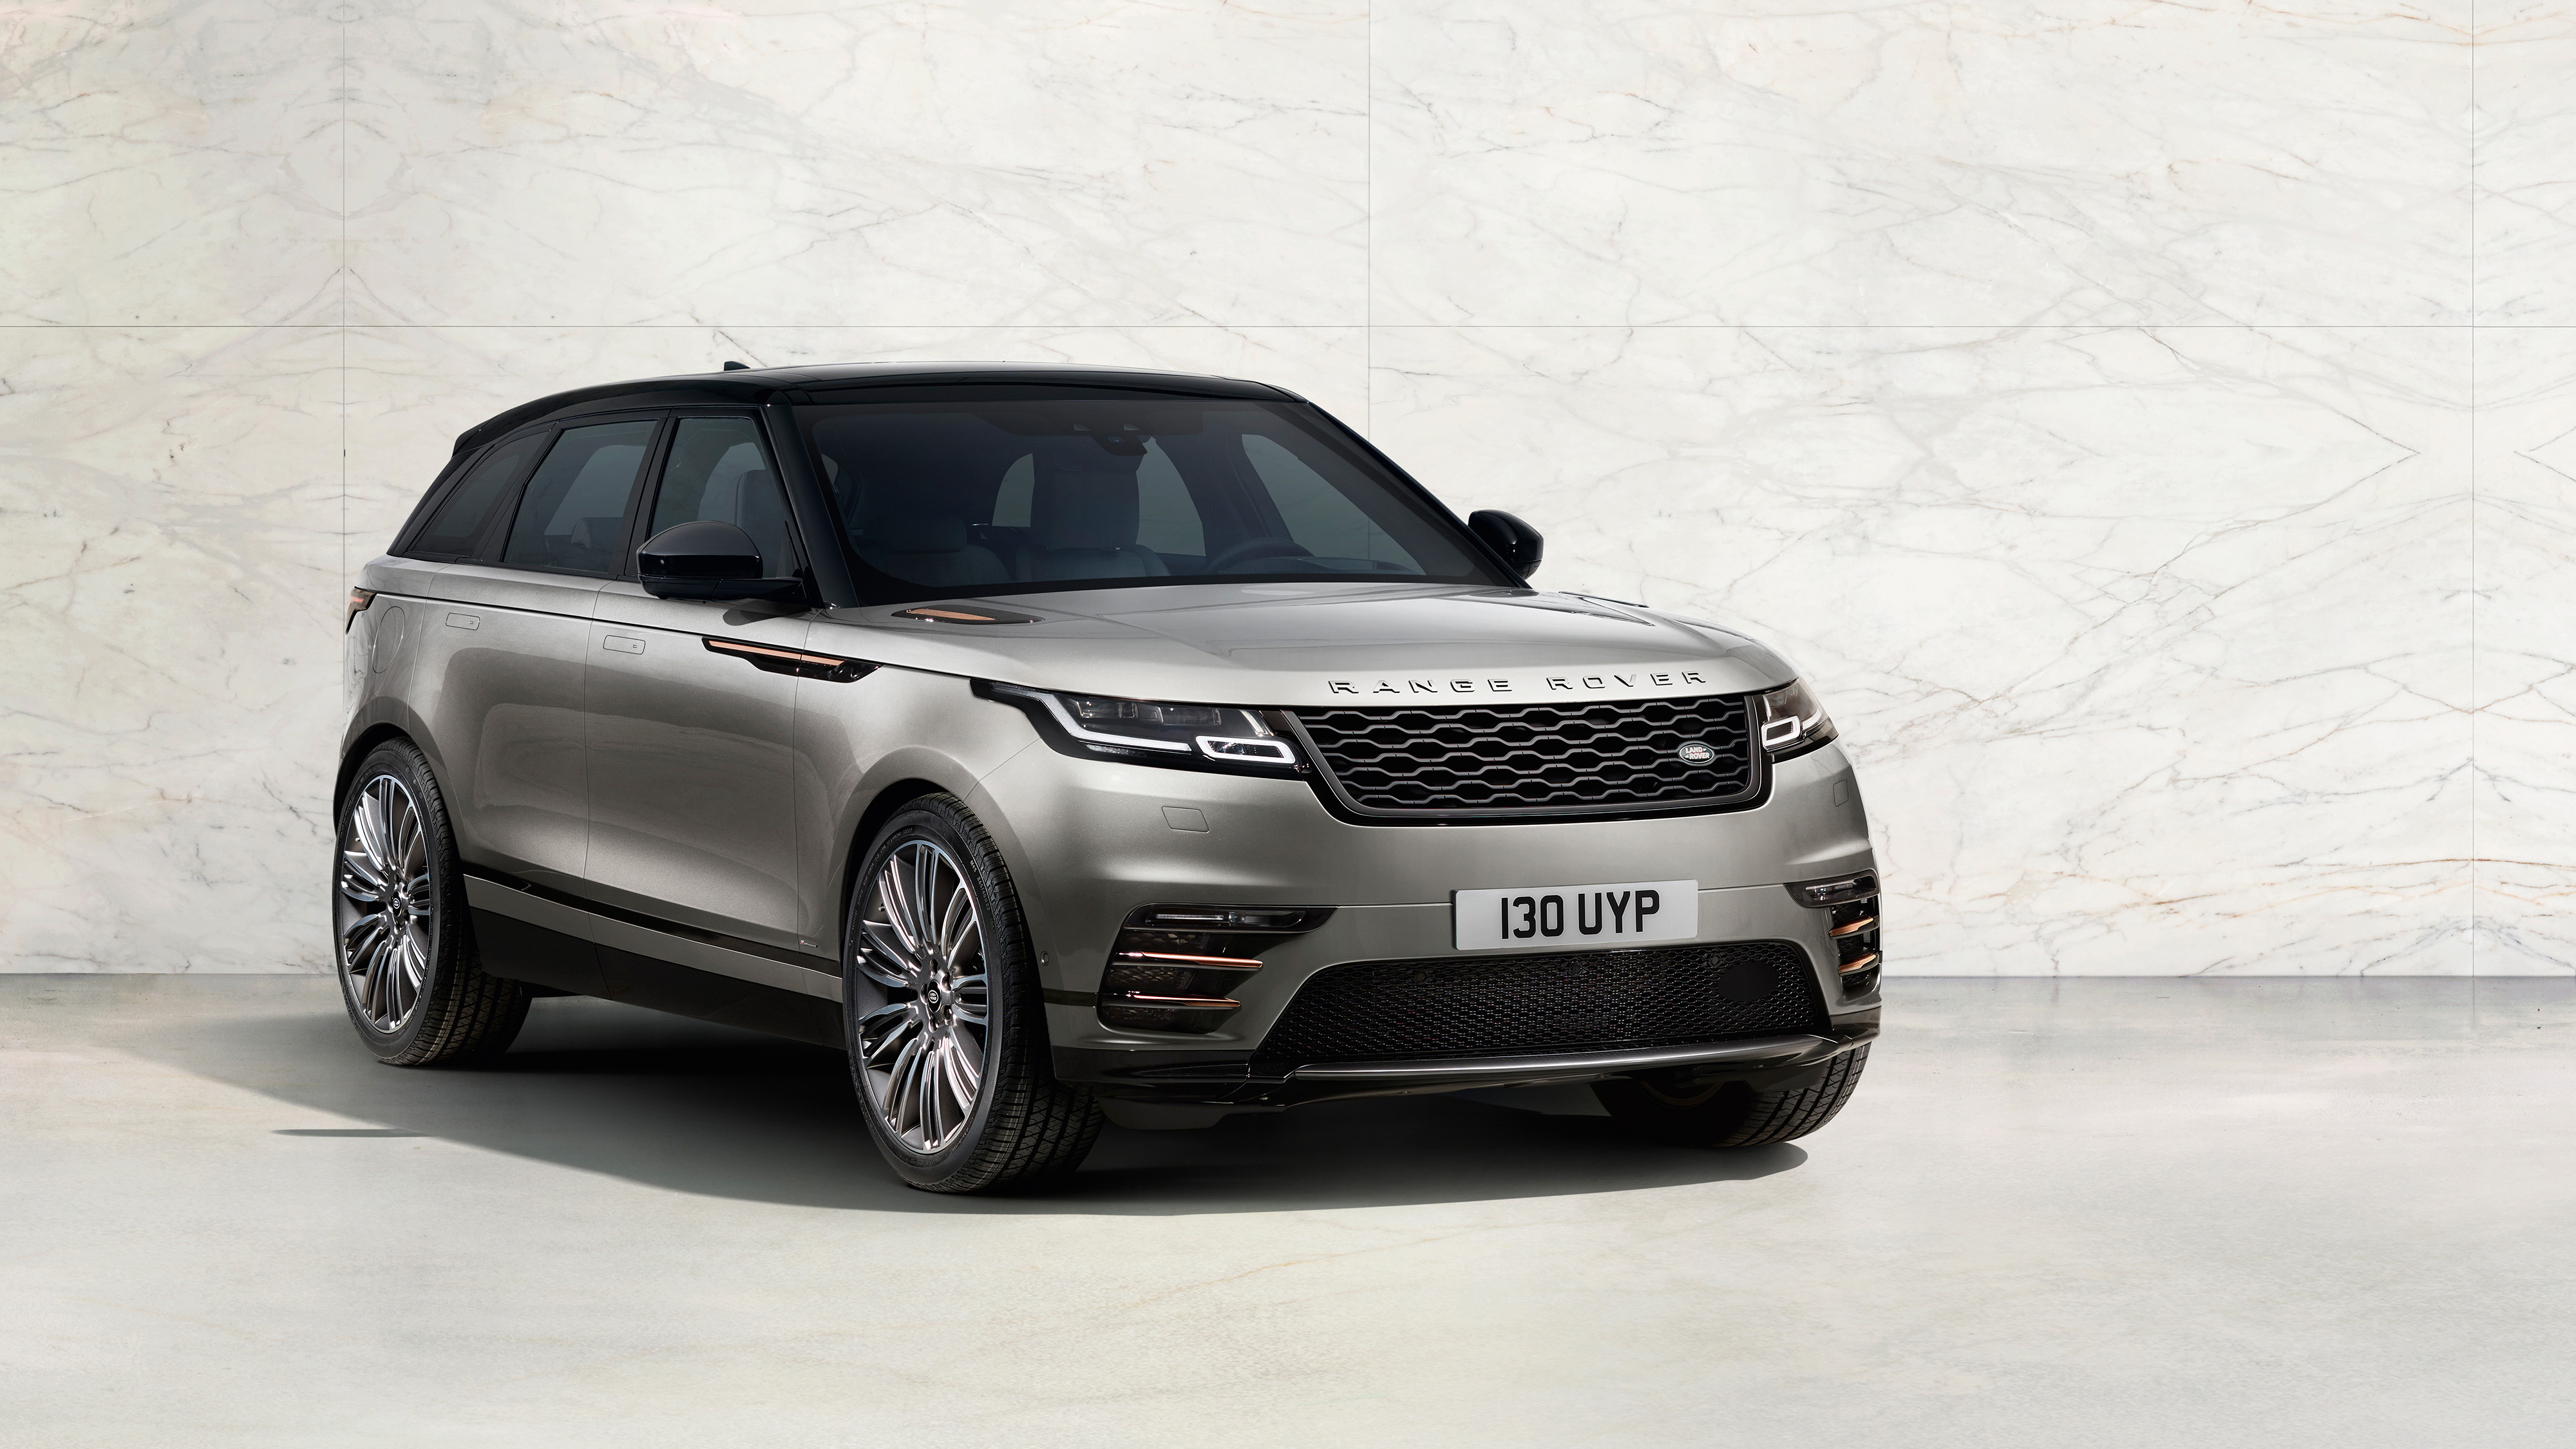 2018 Range Rover Velar Wallpaper Hd Car Wallpapers Id 7376